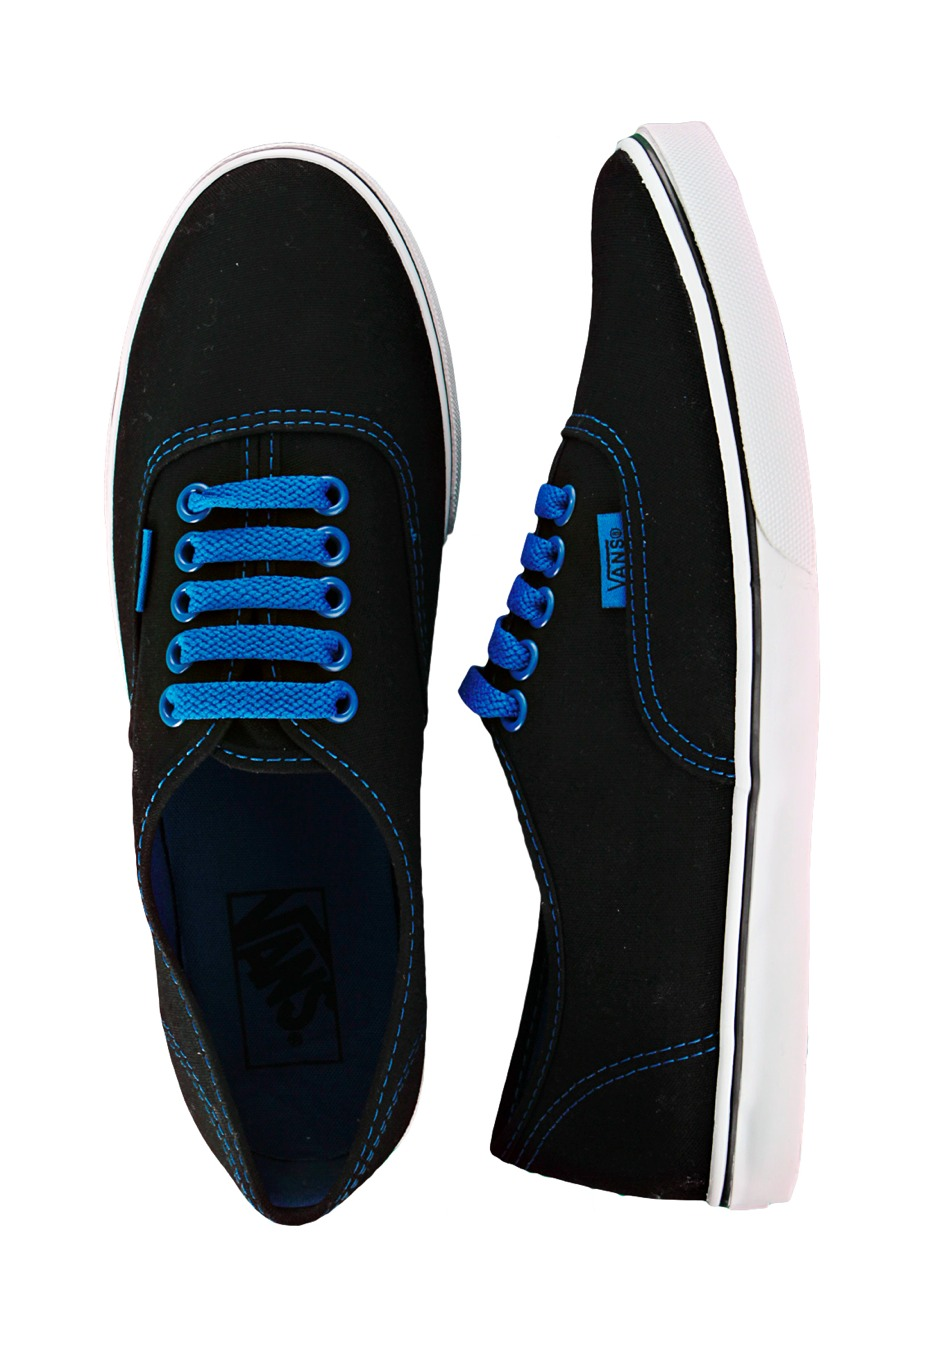 Vans - Authentic Lo Pro Black/Blue - Girl Shoes - Impericon.com ...